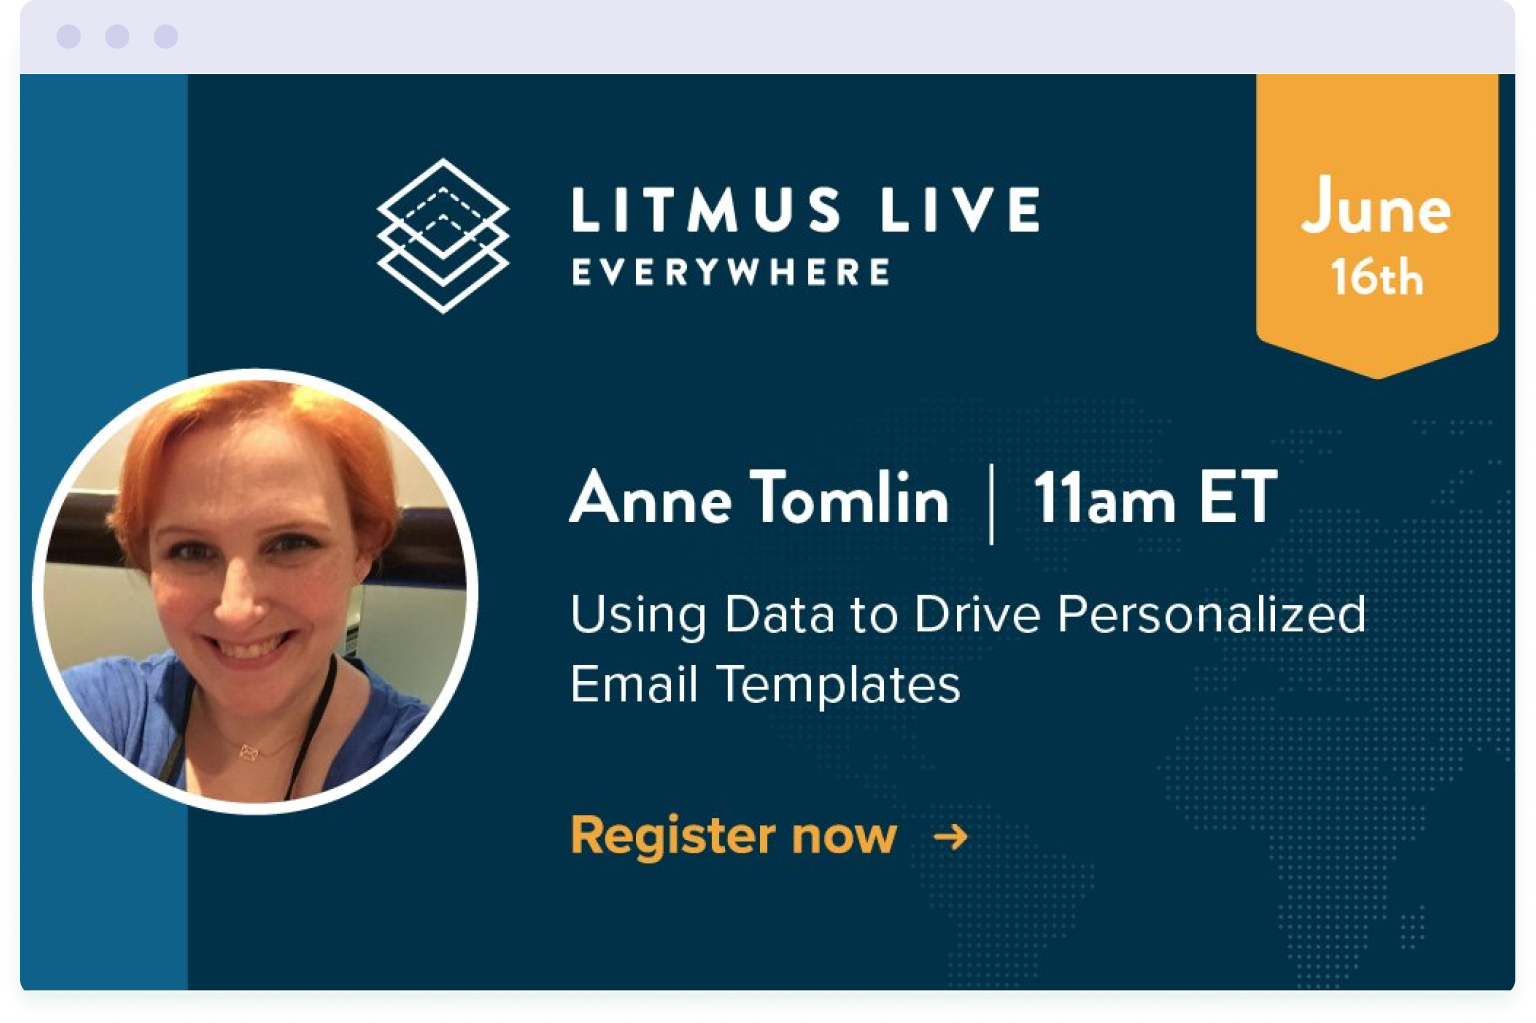 Anne Tomlin regularly talks at industry events, including Litmus Live in 2020